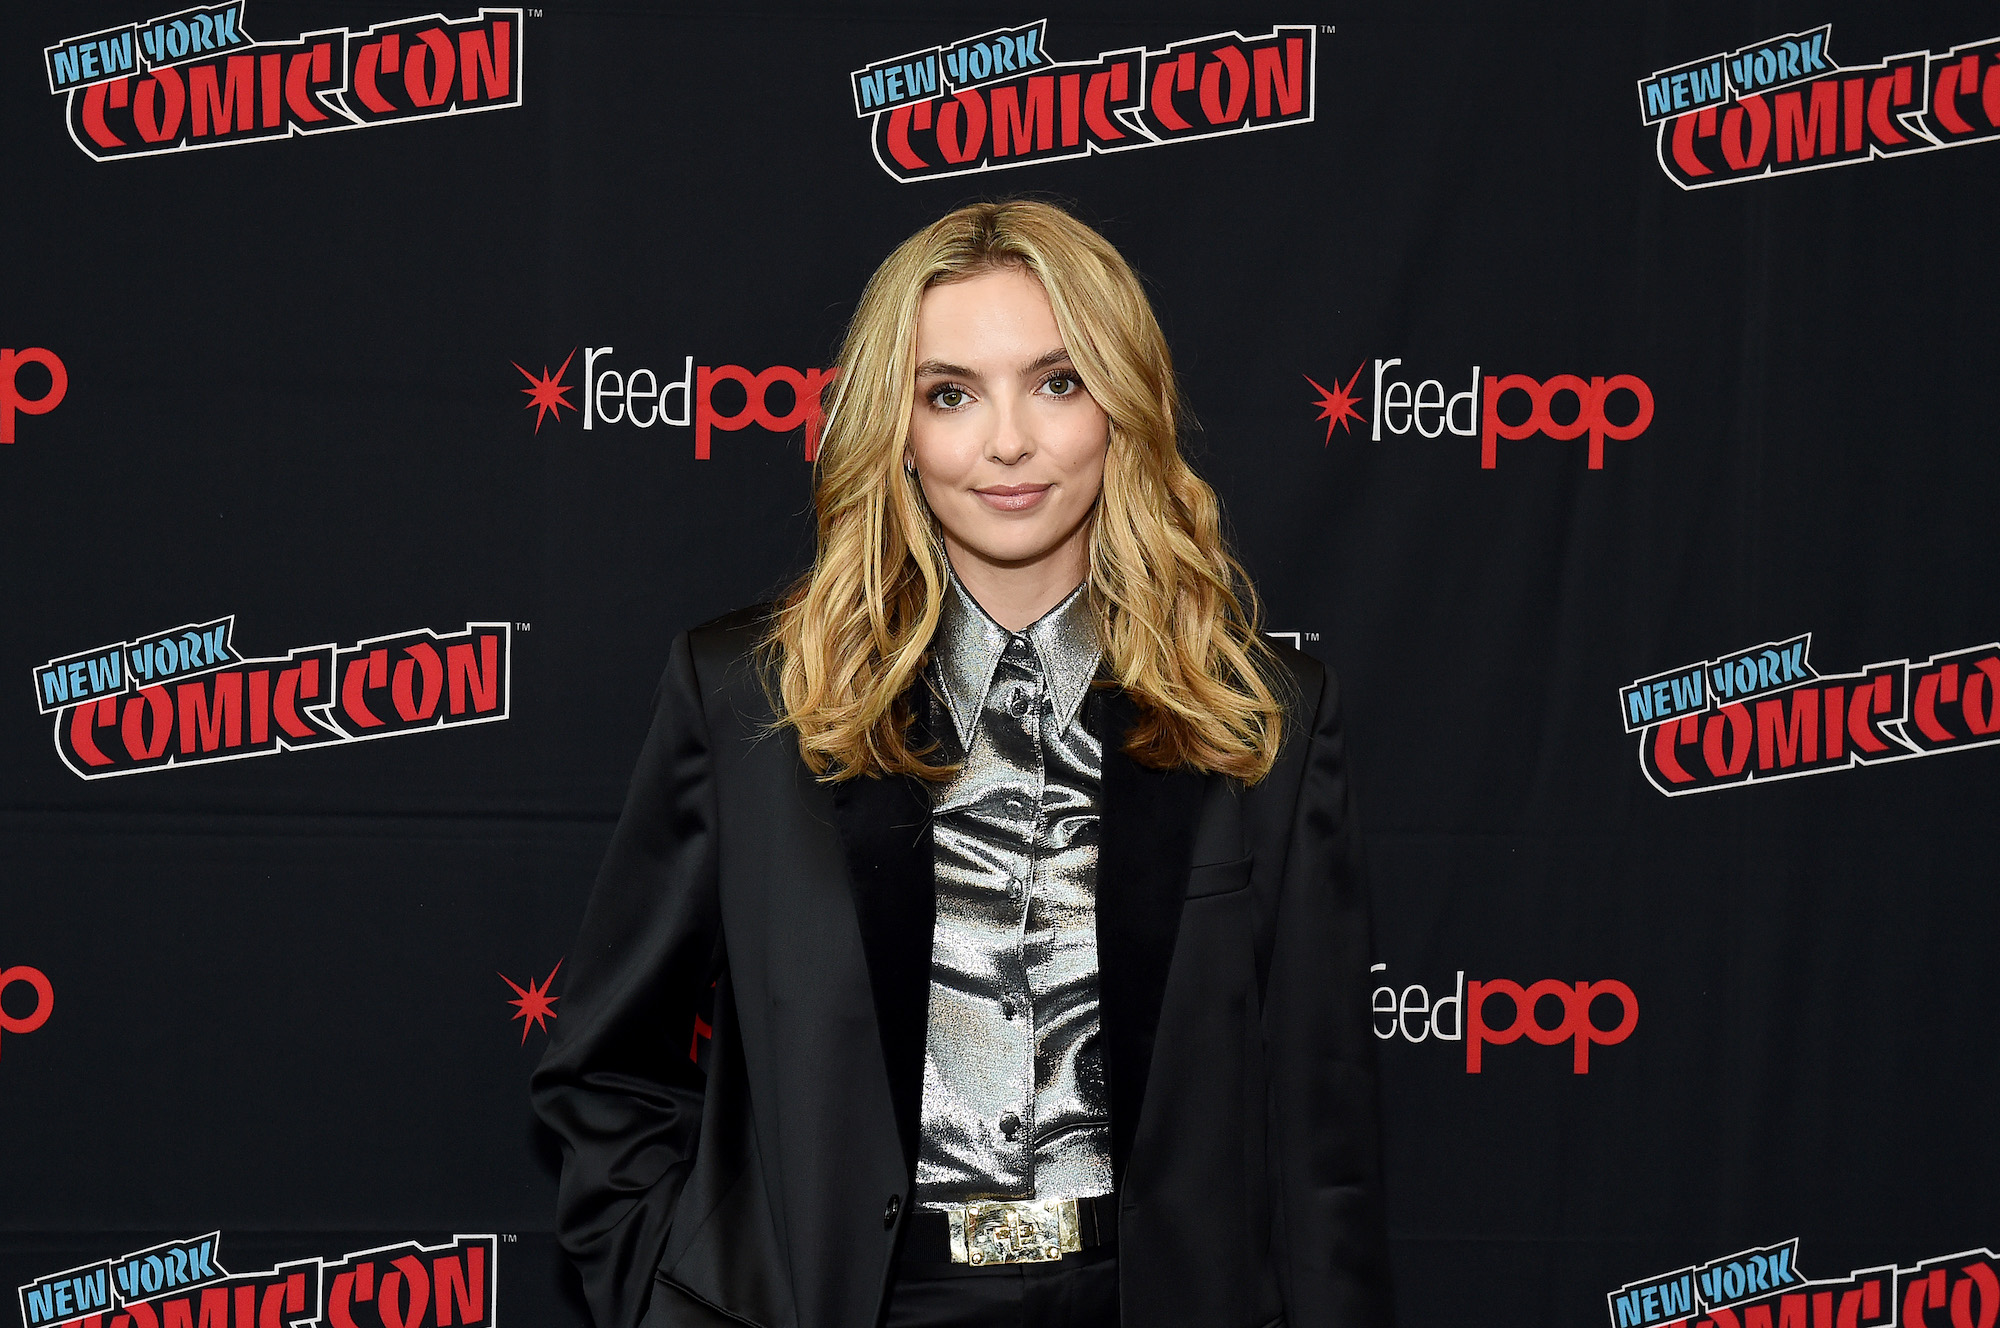 Jodie Comer, who plays Villanelle on 'Killing Eve,' at New York Comic Con for 'Free Guy' panel on Oct. 03, 2019